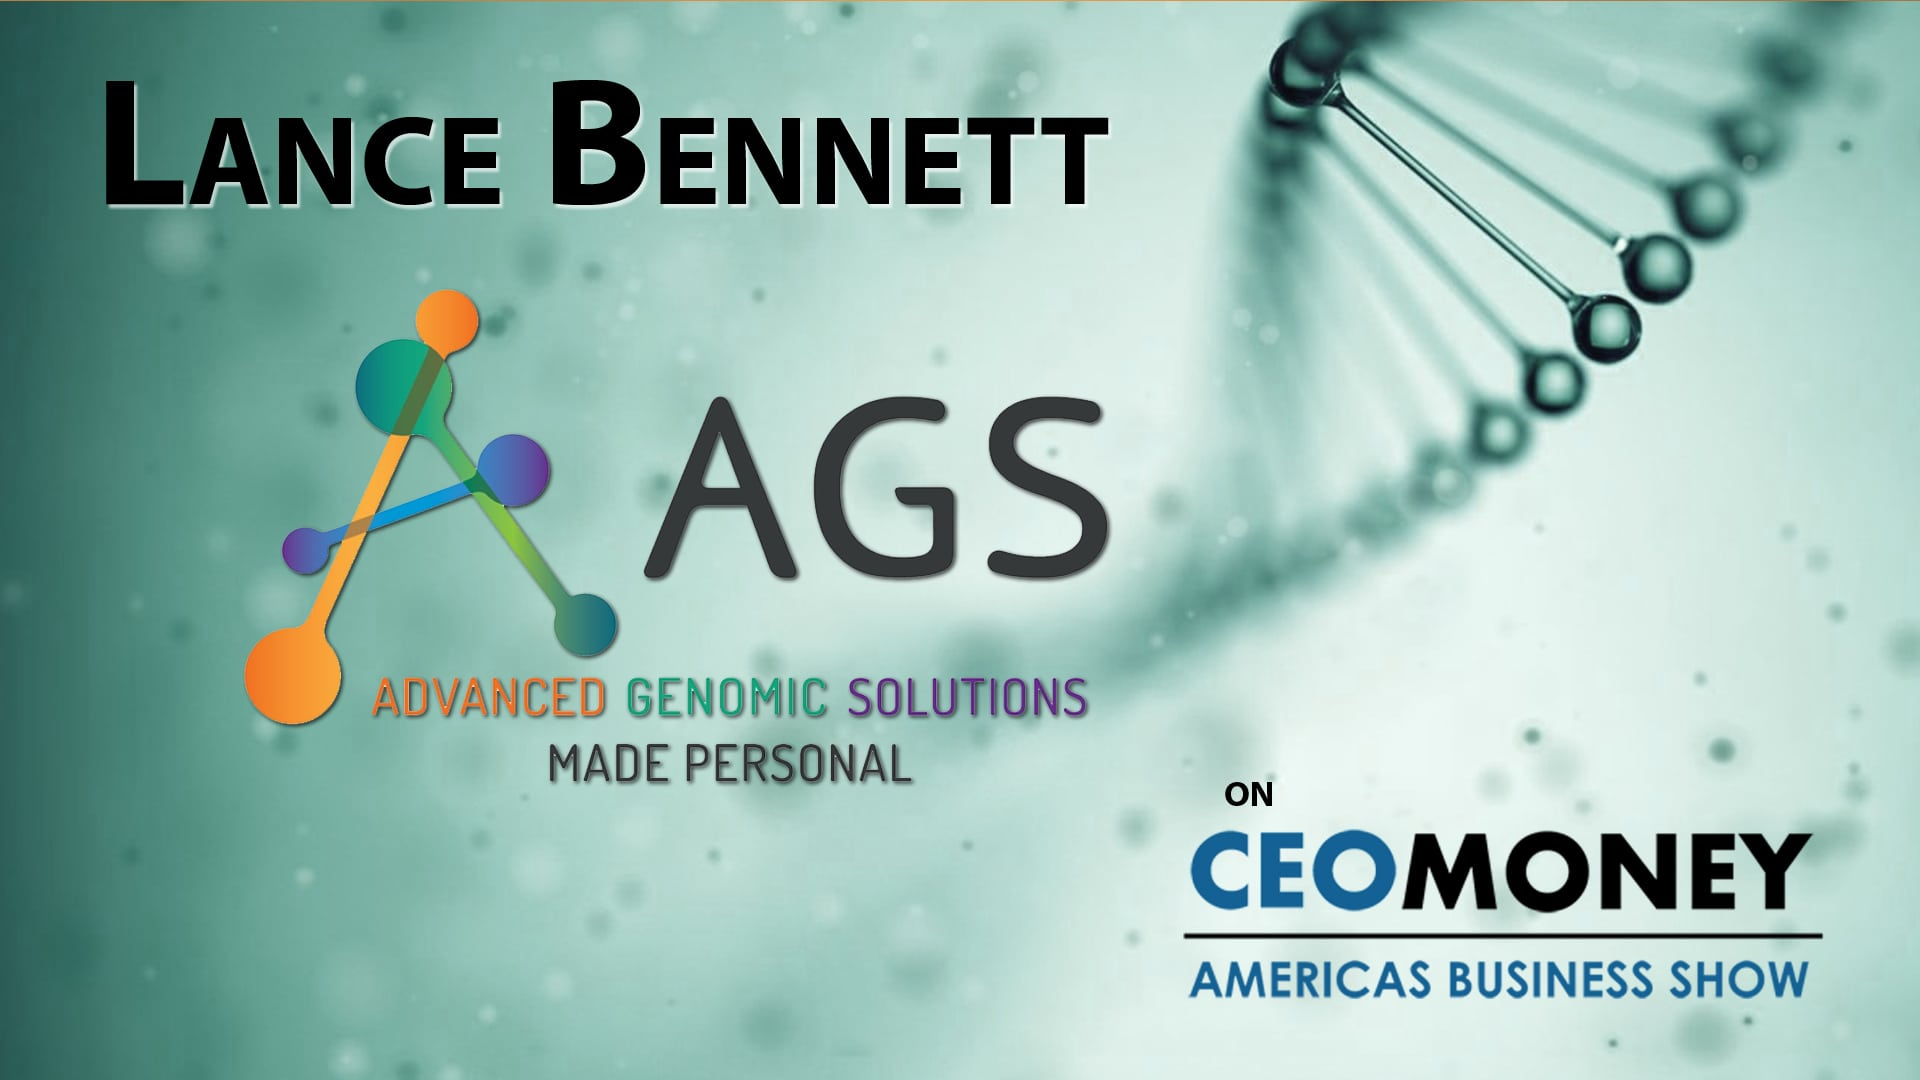 Advanced Genomic Solutions offers DNA tests to empower people in optimizing health and medicine